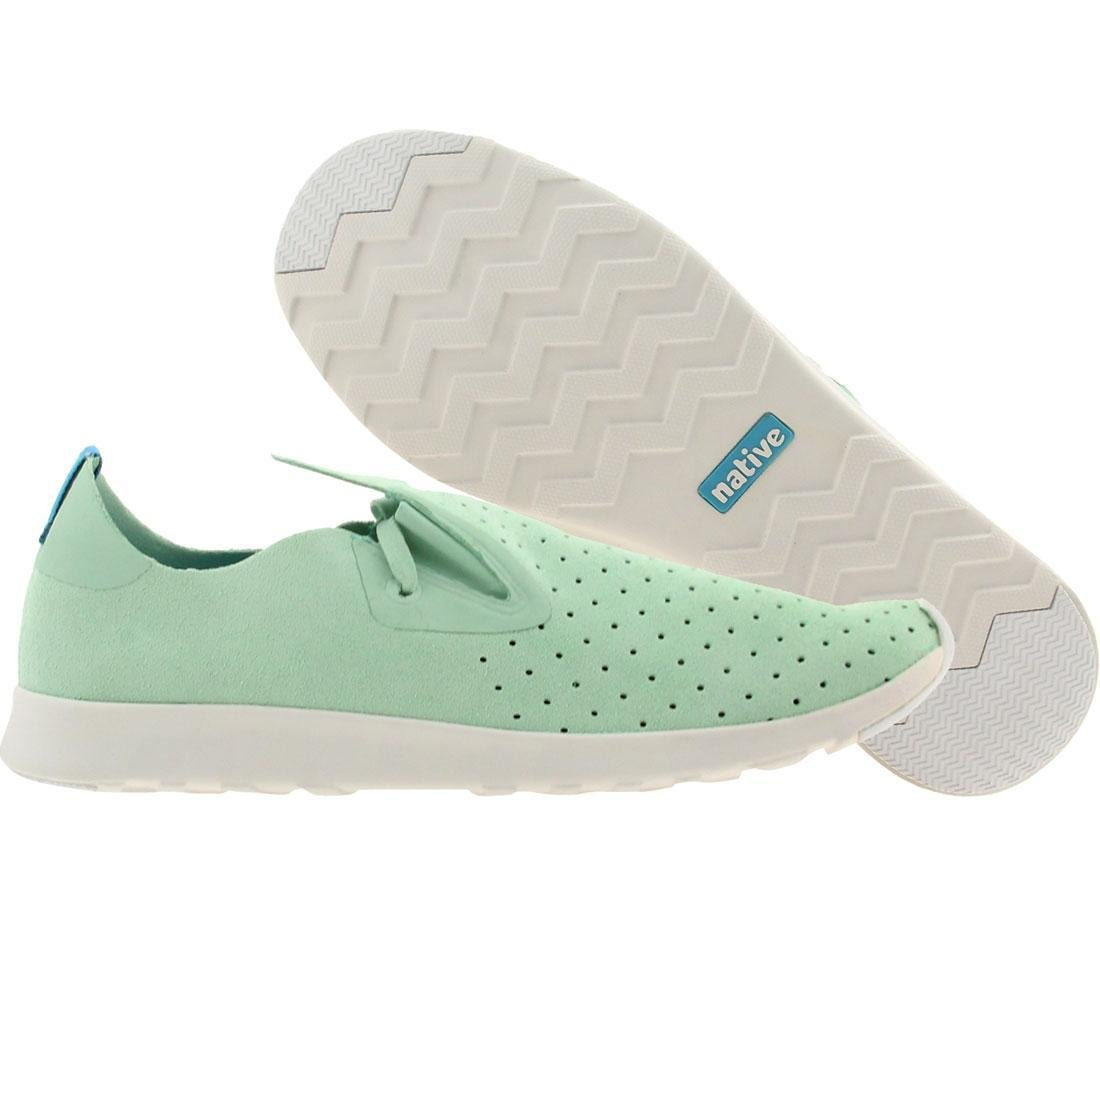 native Mens Apollo Moc Glass Green/Shell White Low-Top Sneakers Size: 8 Style: 21102400-3177